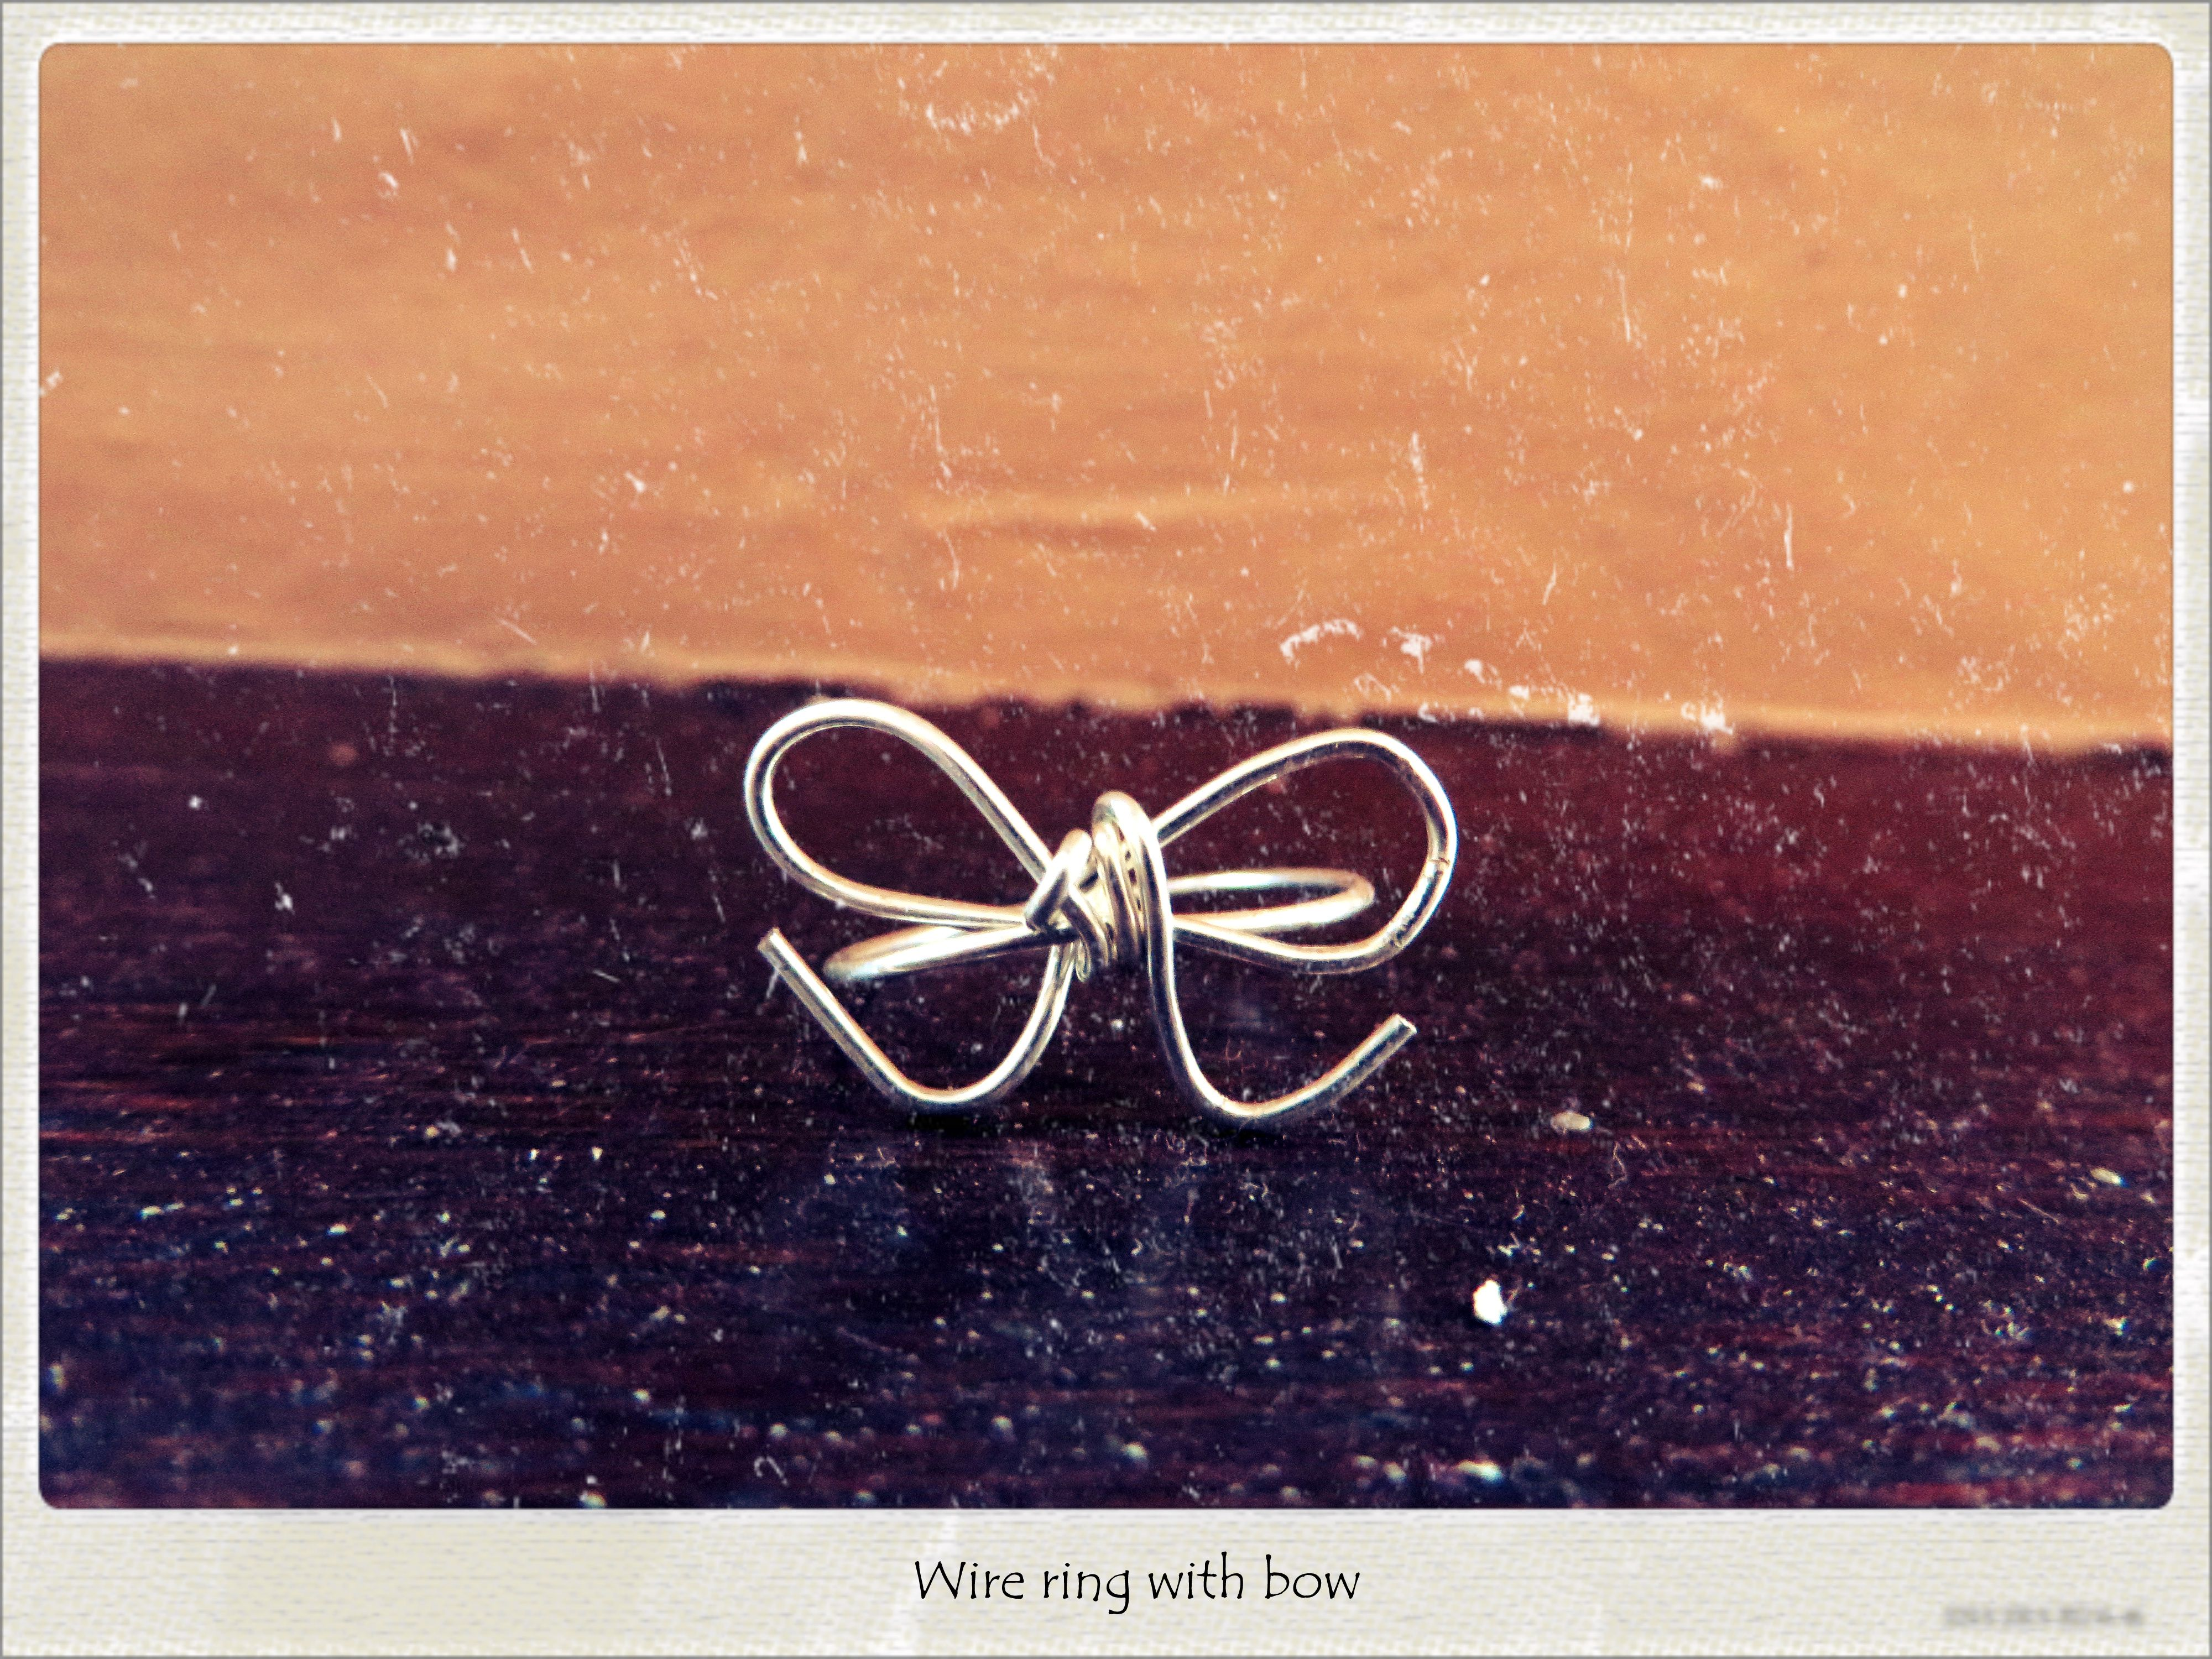 wire ring bow